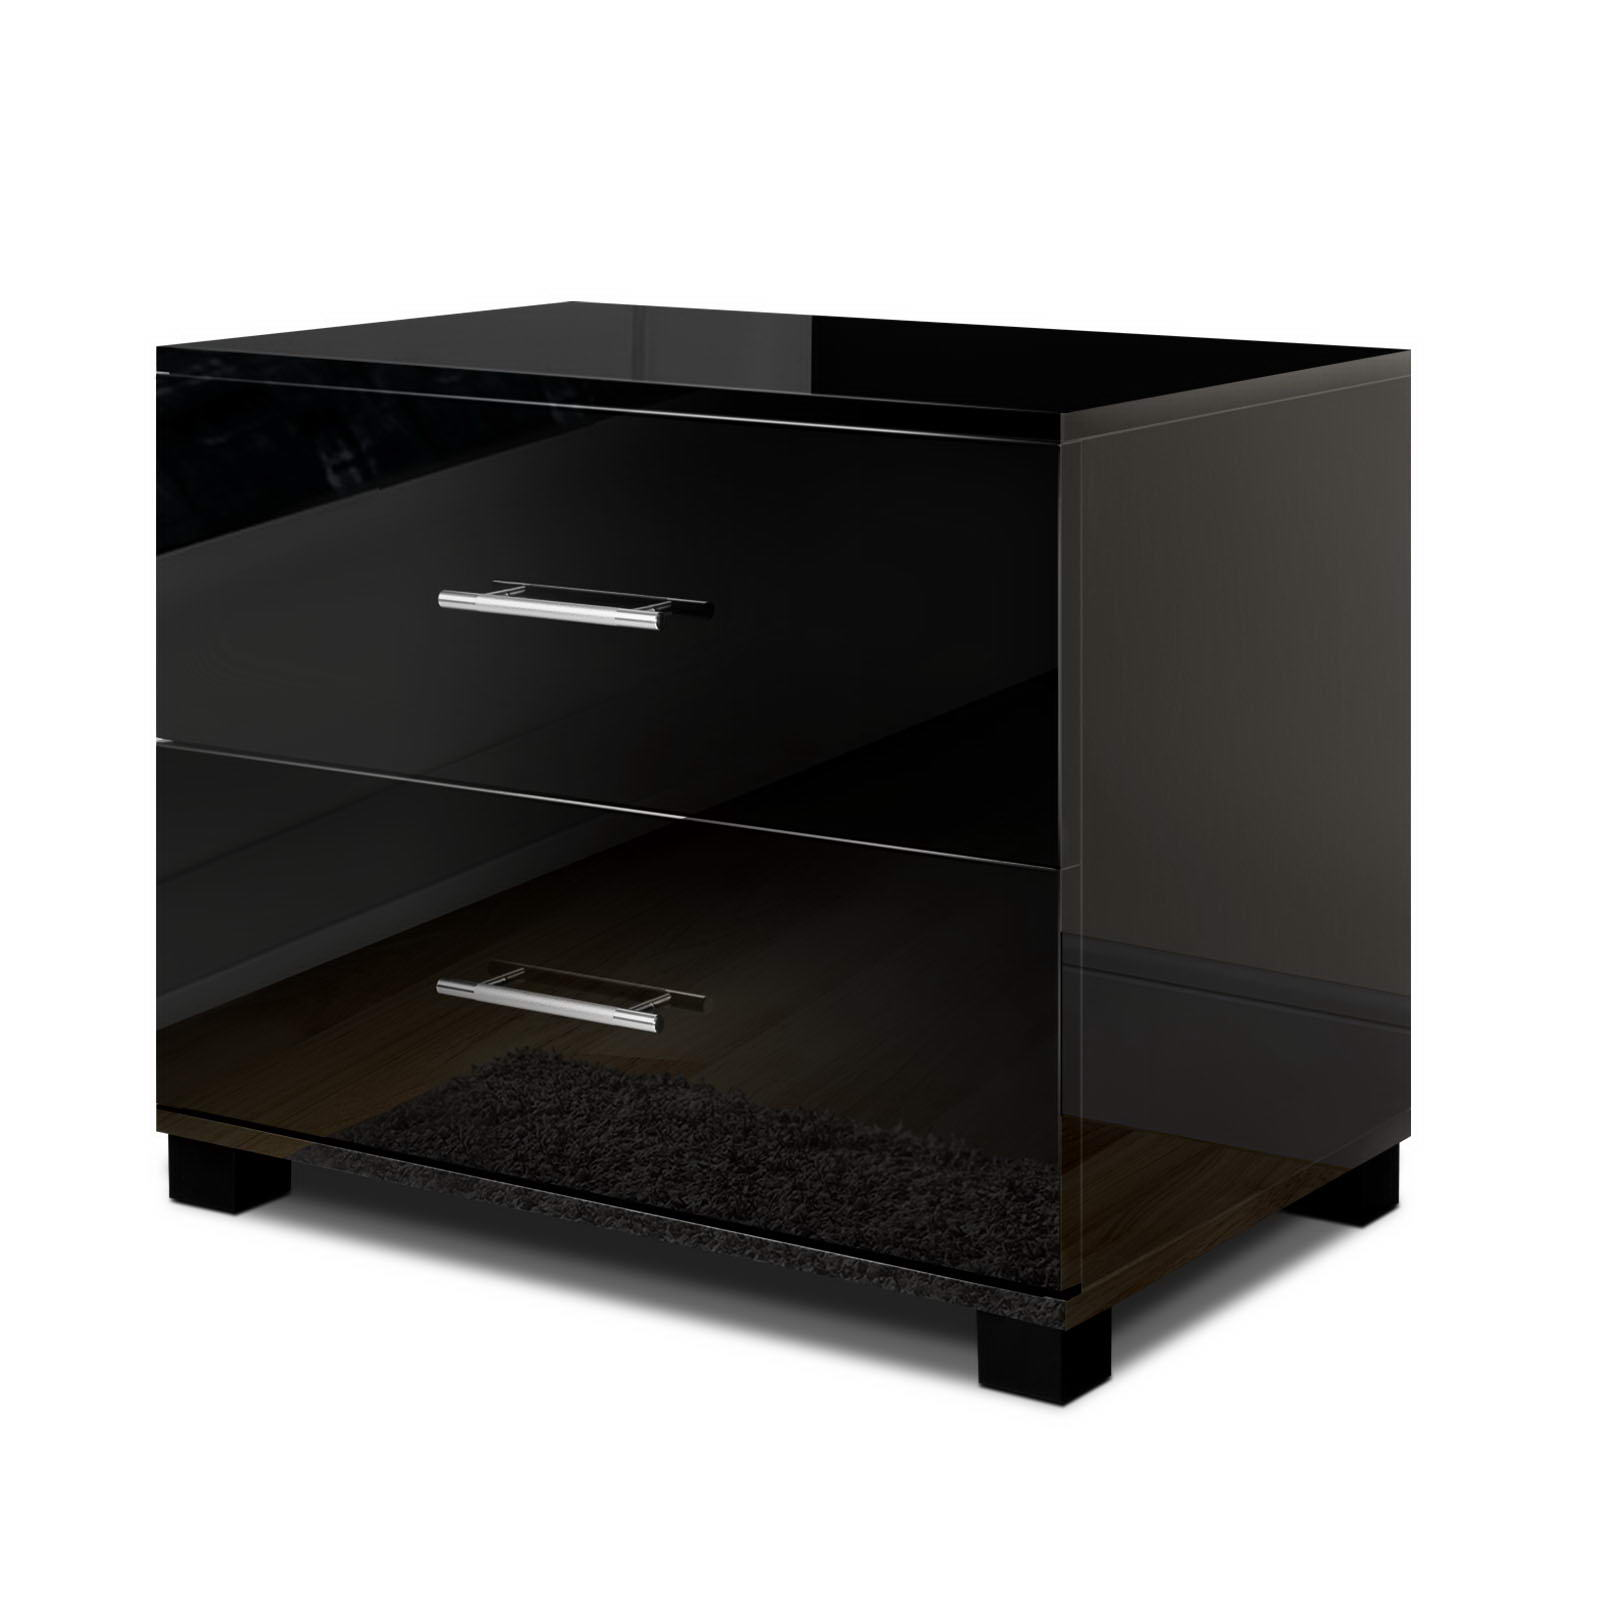 🥇 New Artiss High Gloss Two Drawers Bedside Table – Black ⭐+ Fast Free Shipping 🚀